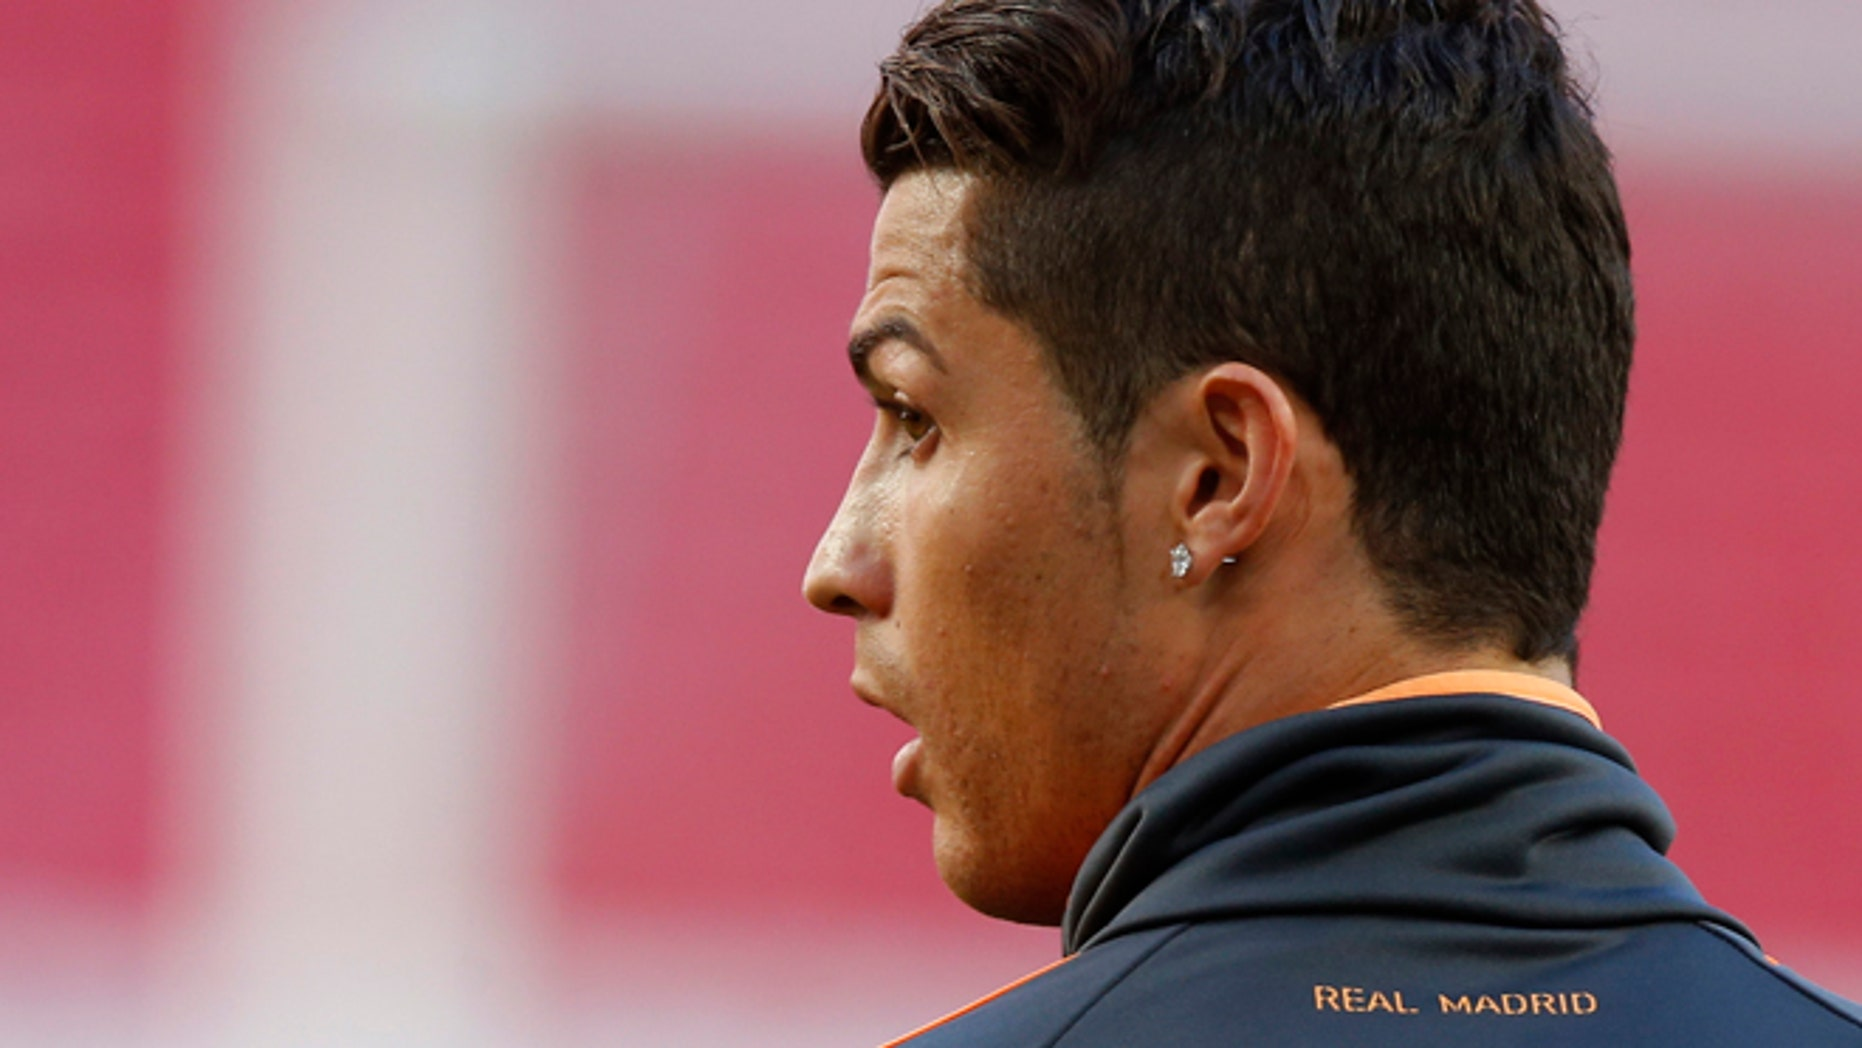 Real's Cristiano Ronaldo looks on, during a training session ahead of Saturday's Champions League final soccer match between Real Madrid and Atletico Madrid, in Luz stadium in Lisbon, Portugal, Friday, May 23, 2014. (AP Photo/Daniel Ochoa de Olza)